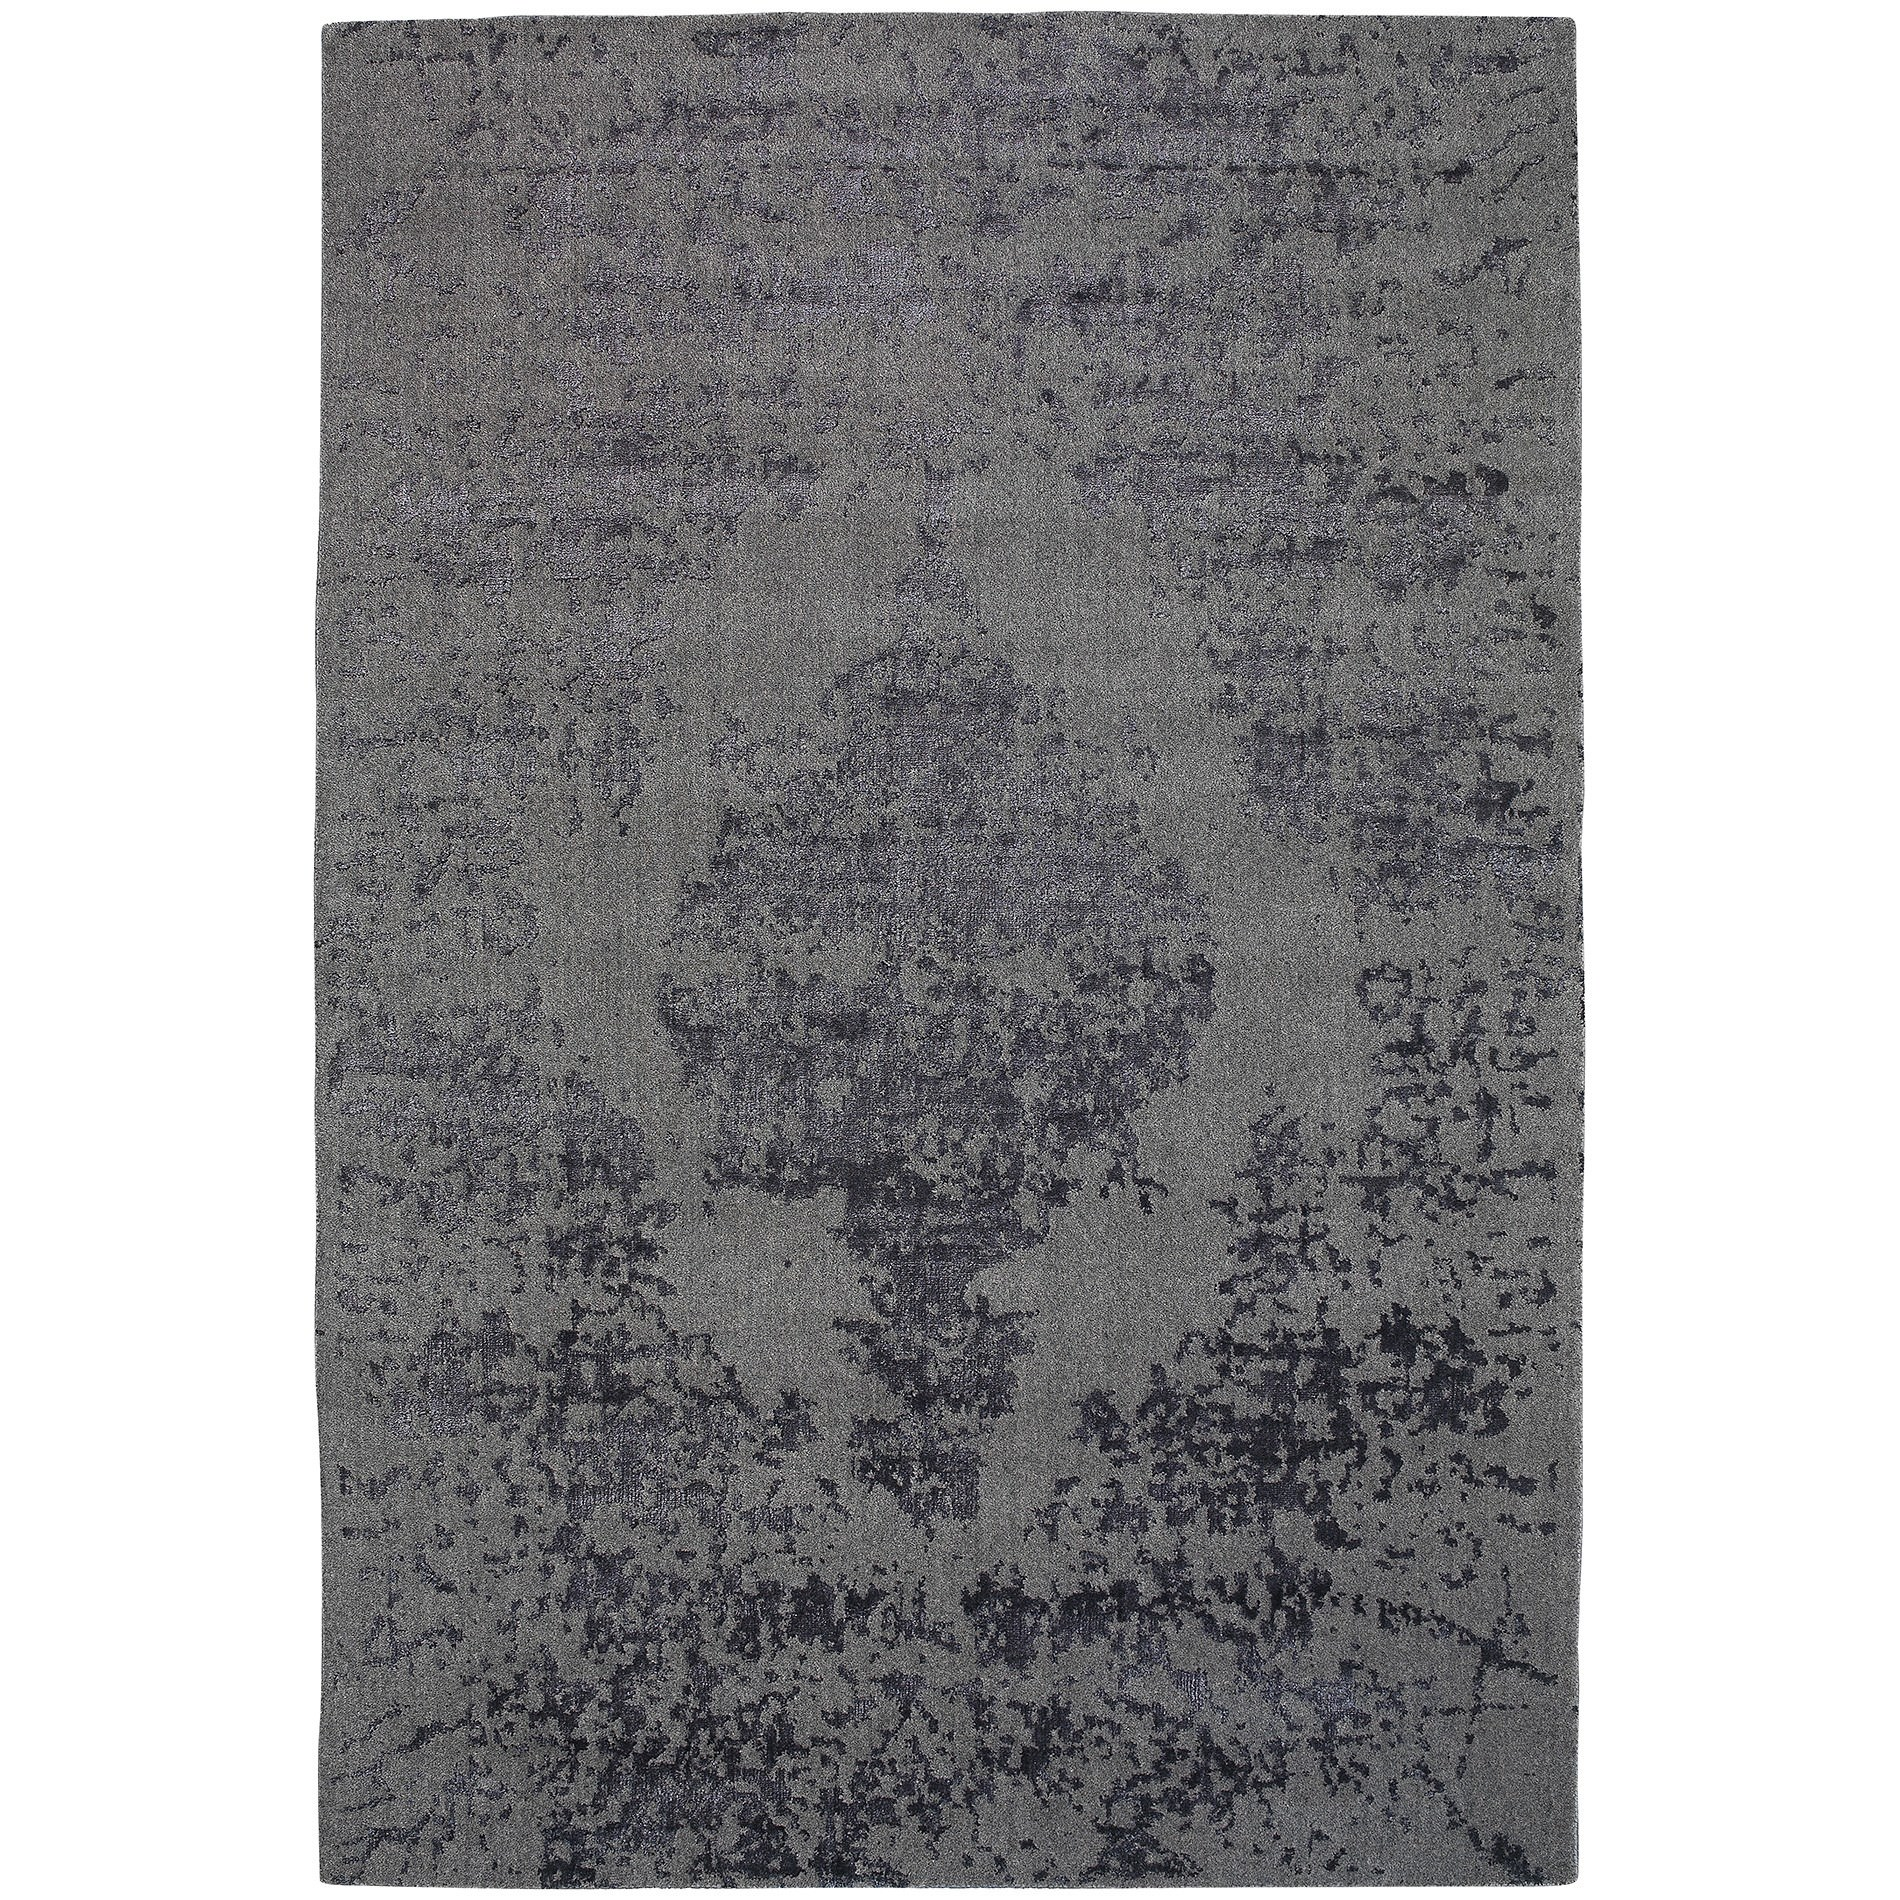 Vienna No.049 Handmade Wool Transitional Rug, 380x280cm, Smoke